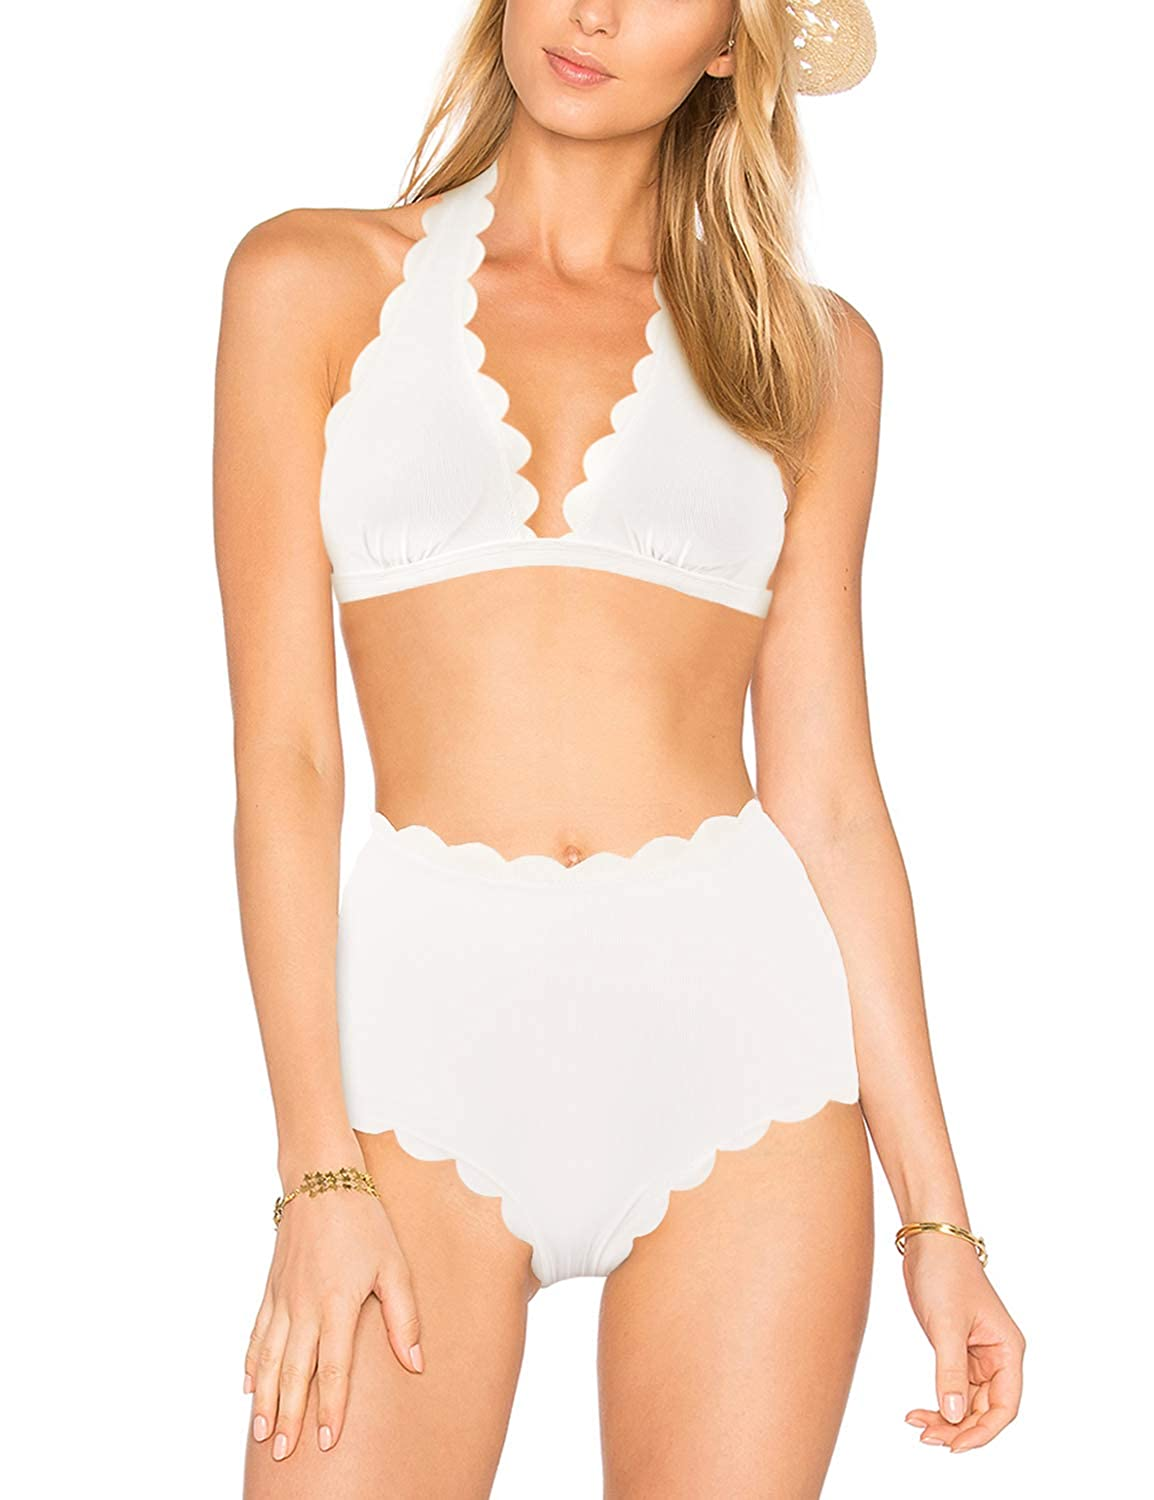 White Blooming Jelly Women's High Waisted Swimsuit Halter Two Piece Bathing Suit Scalloped Bikini Set